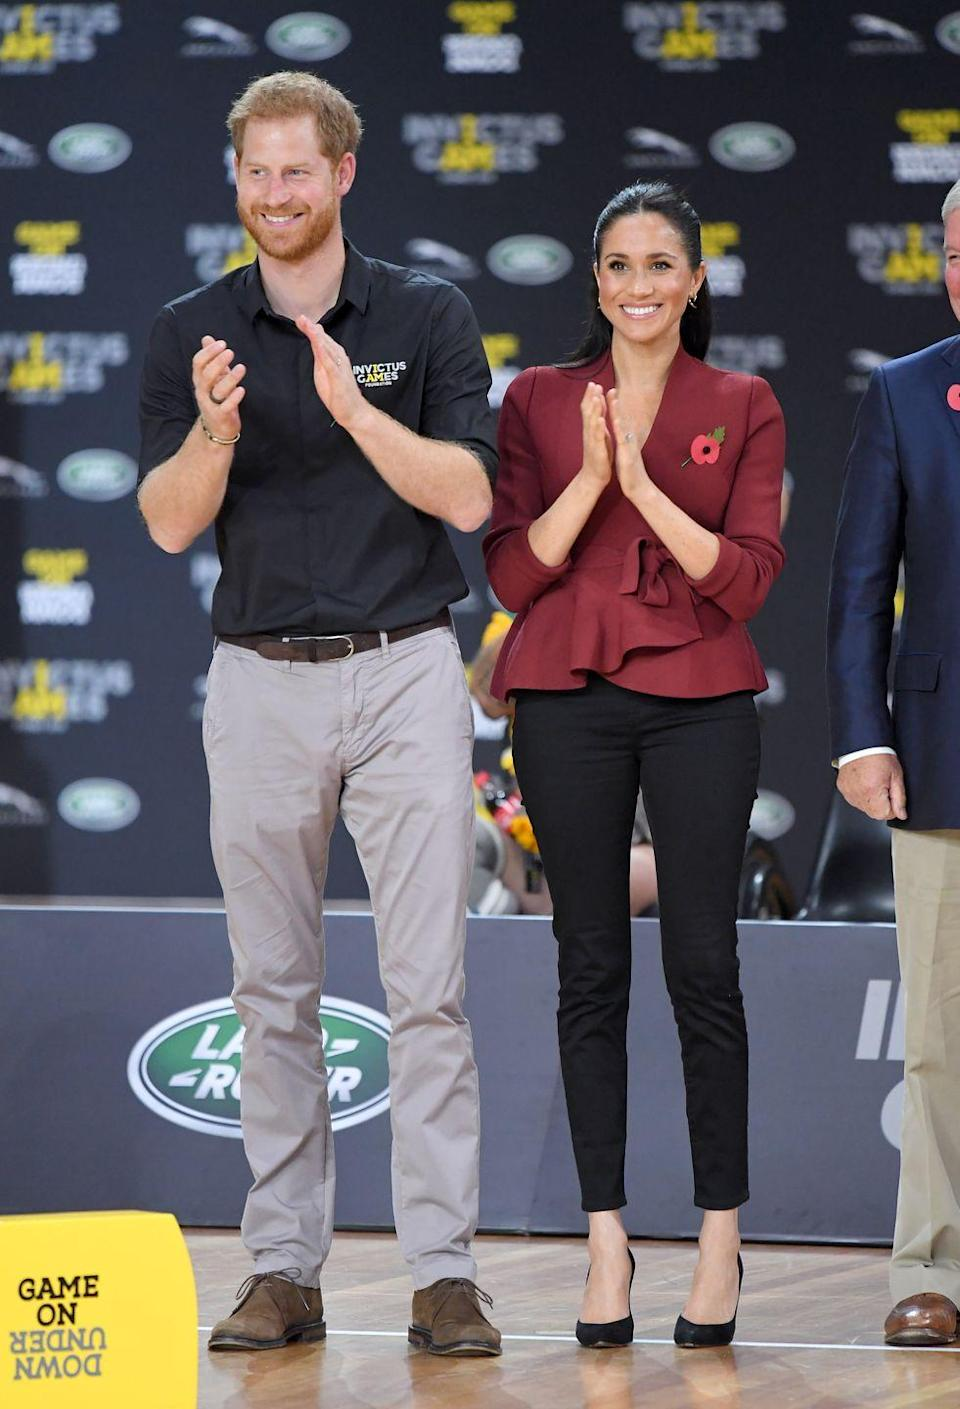 """<p>Harry and Meghan cheered on the Invictus Games wheelchair basketball final at the Quay Centre in Sydney. The Duchess wore <a href=""""https://outlanddenim.com/products/harriet-in-black"""" rel=""""nofollow noopener"""" target=""""_blank"""" data-ylk=""""slk:Outland Denim skinny jeans"""" class=""""link rapid-noclick-resp"""">Outland Denim skinny jeans</a> with a wrap top by Scanlan Theodore. She also wore one of her favorite pairs of heels, the Jay Pump by Sarah Flint.</p><p><a class=""""link rapid-noclick-resp"""" href=""""https://go.redirectingat.com?id=74968X1596630&url=https%3A%2F%2Fwww.sarahflint.com%2Fproducts%2Fjay-pump-85-black-suede&sref=https%3A%2F%2Fwww.townandcountrymag.com%2Fstyle%2Ffashion-trends%2Fg3272%2Fmeghan-markle-preppy-style%2F"""" rel=""""nofollow noopener"""" target=""""_blank"""" data-ylk=""""slk:SHOP NOW"""">SHOP NOW</a> <em>Sarah Flint Jay Pump, $395</em></p>"""